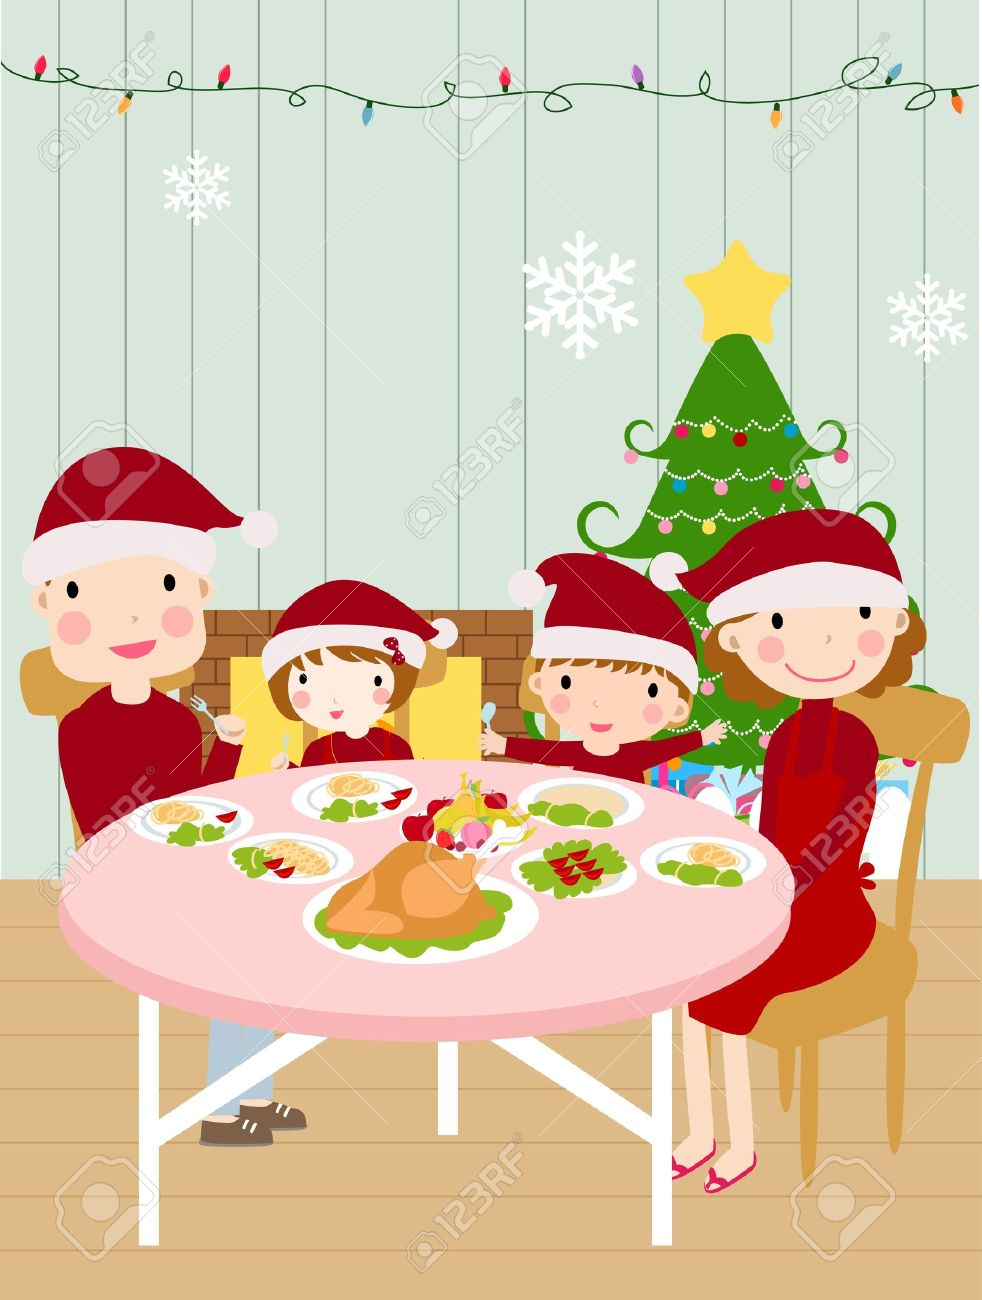 656 Christmas Family Dinner Stock Illustrations, Cliparts And.